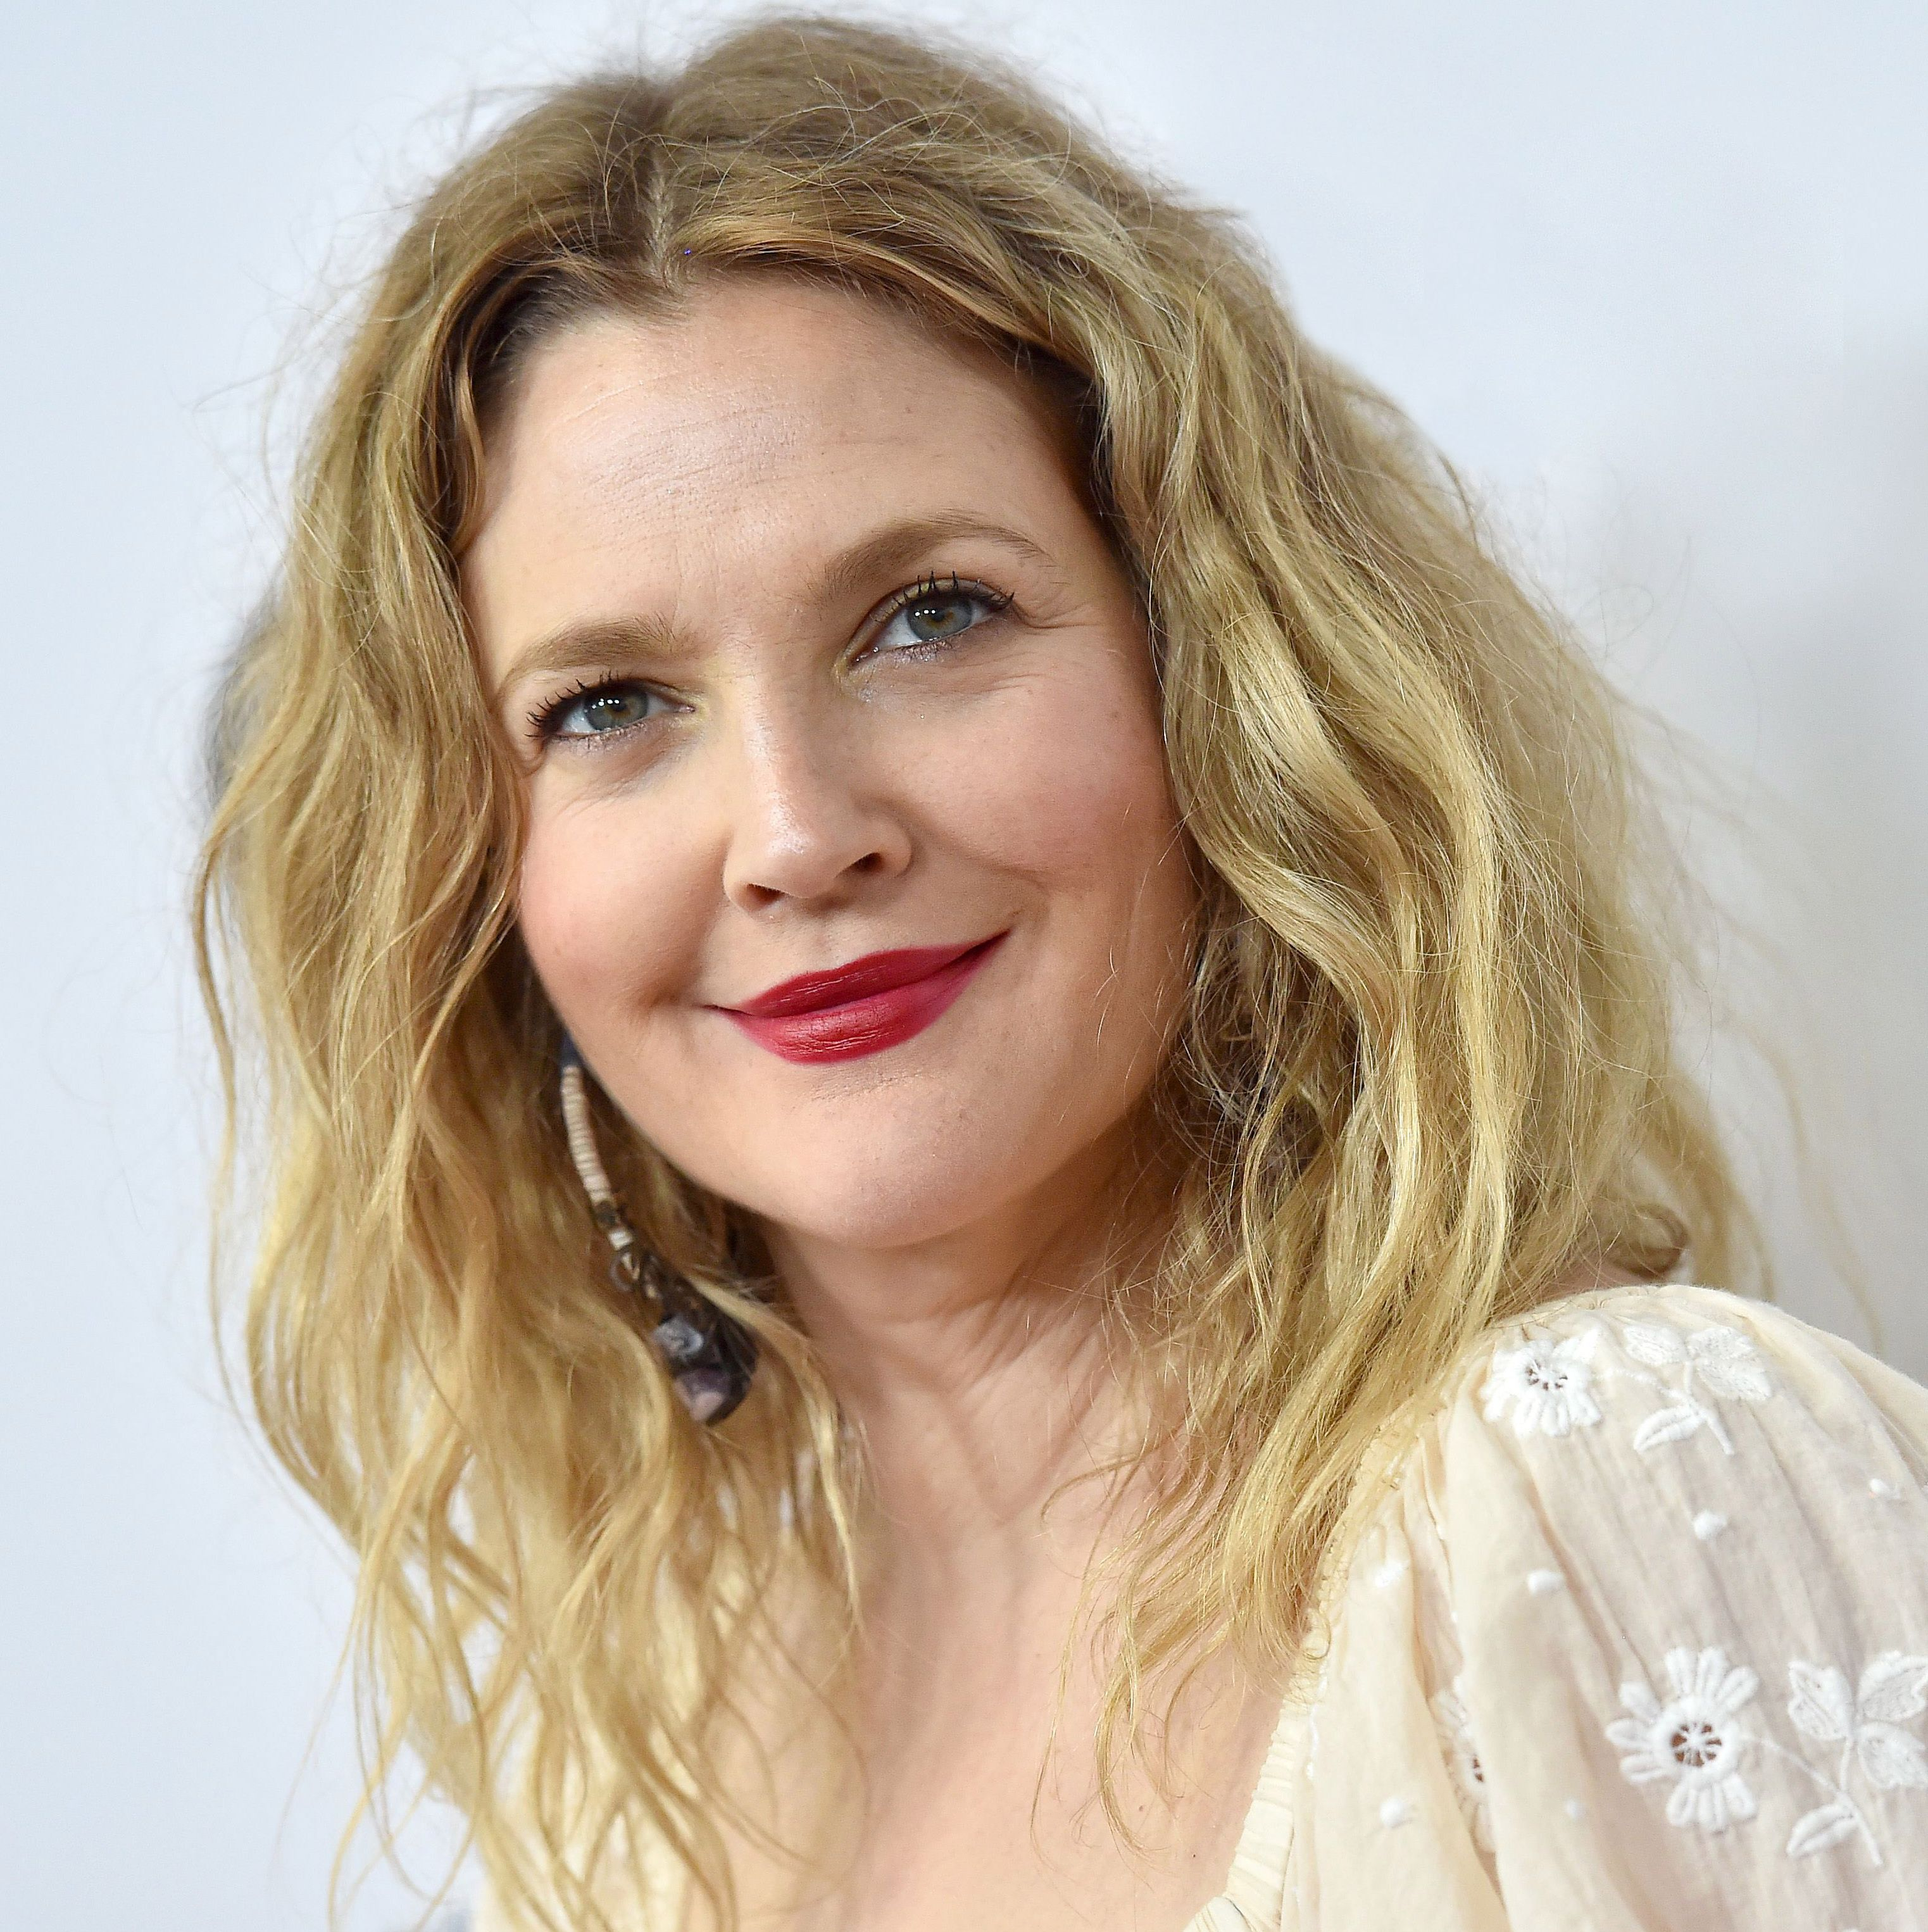 Drew Barrymore Swears by This $18 Acne Gel to Clear Breakouts Fast